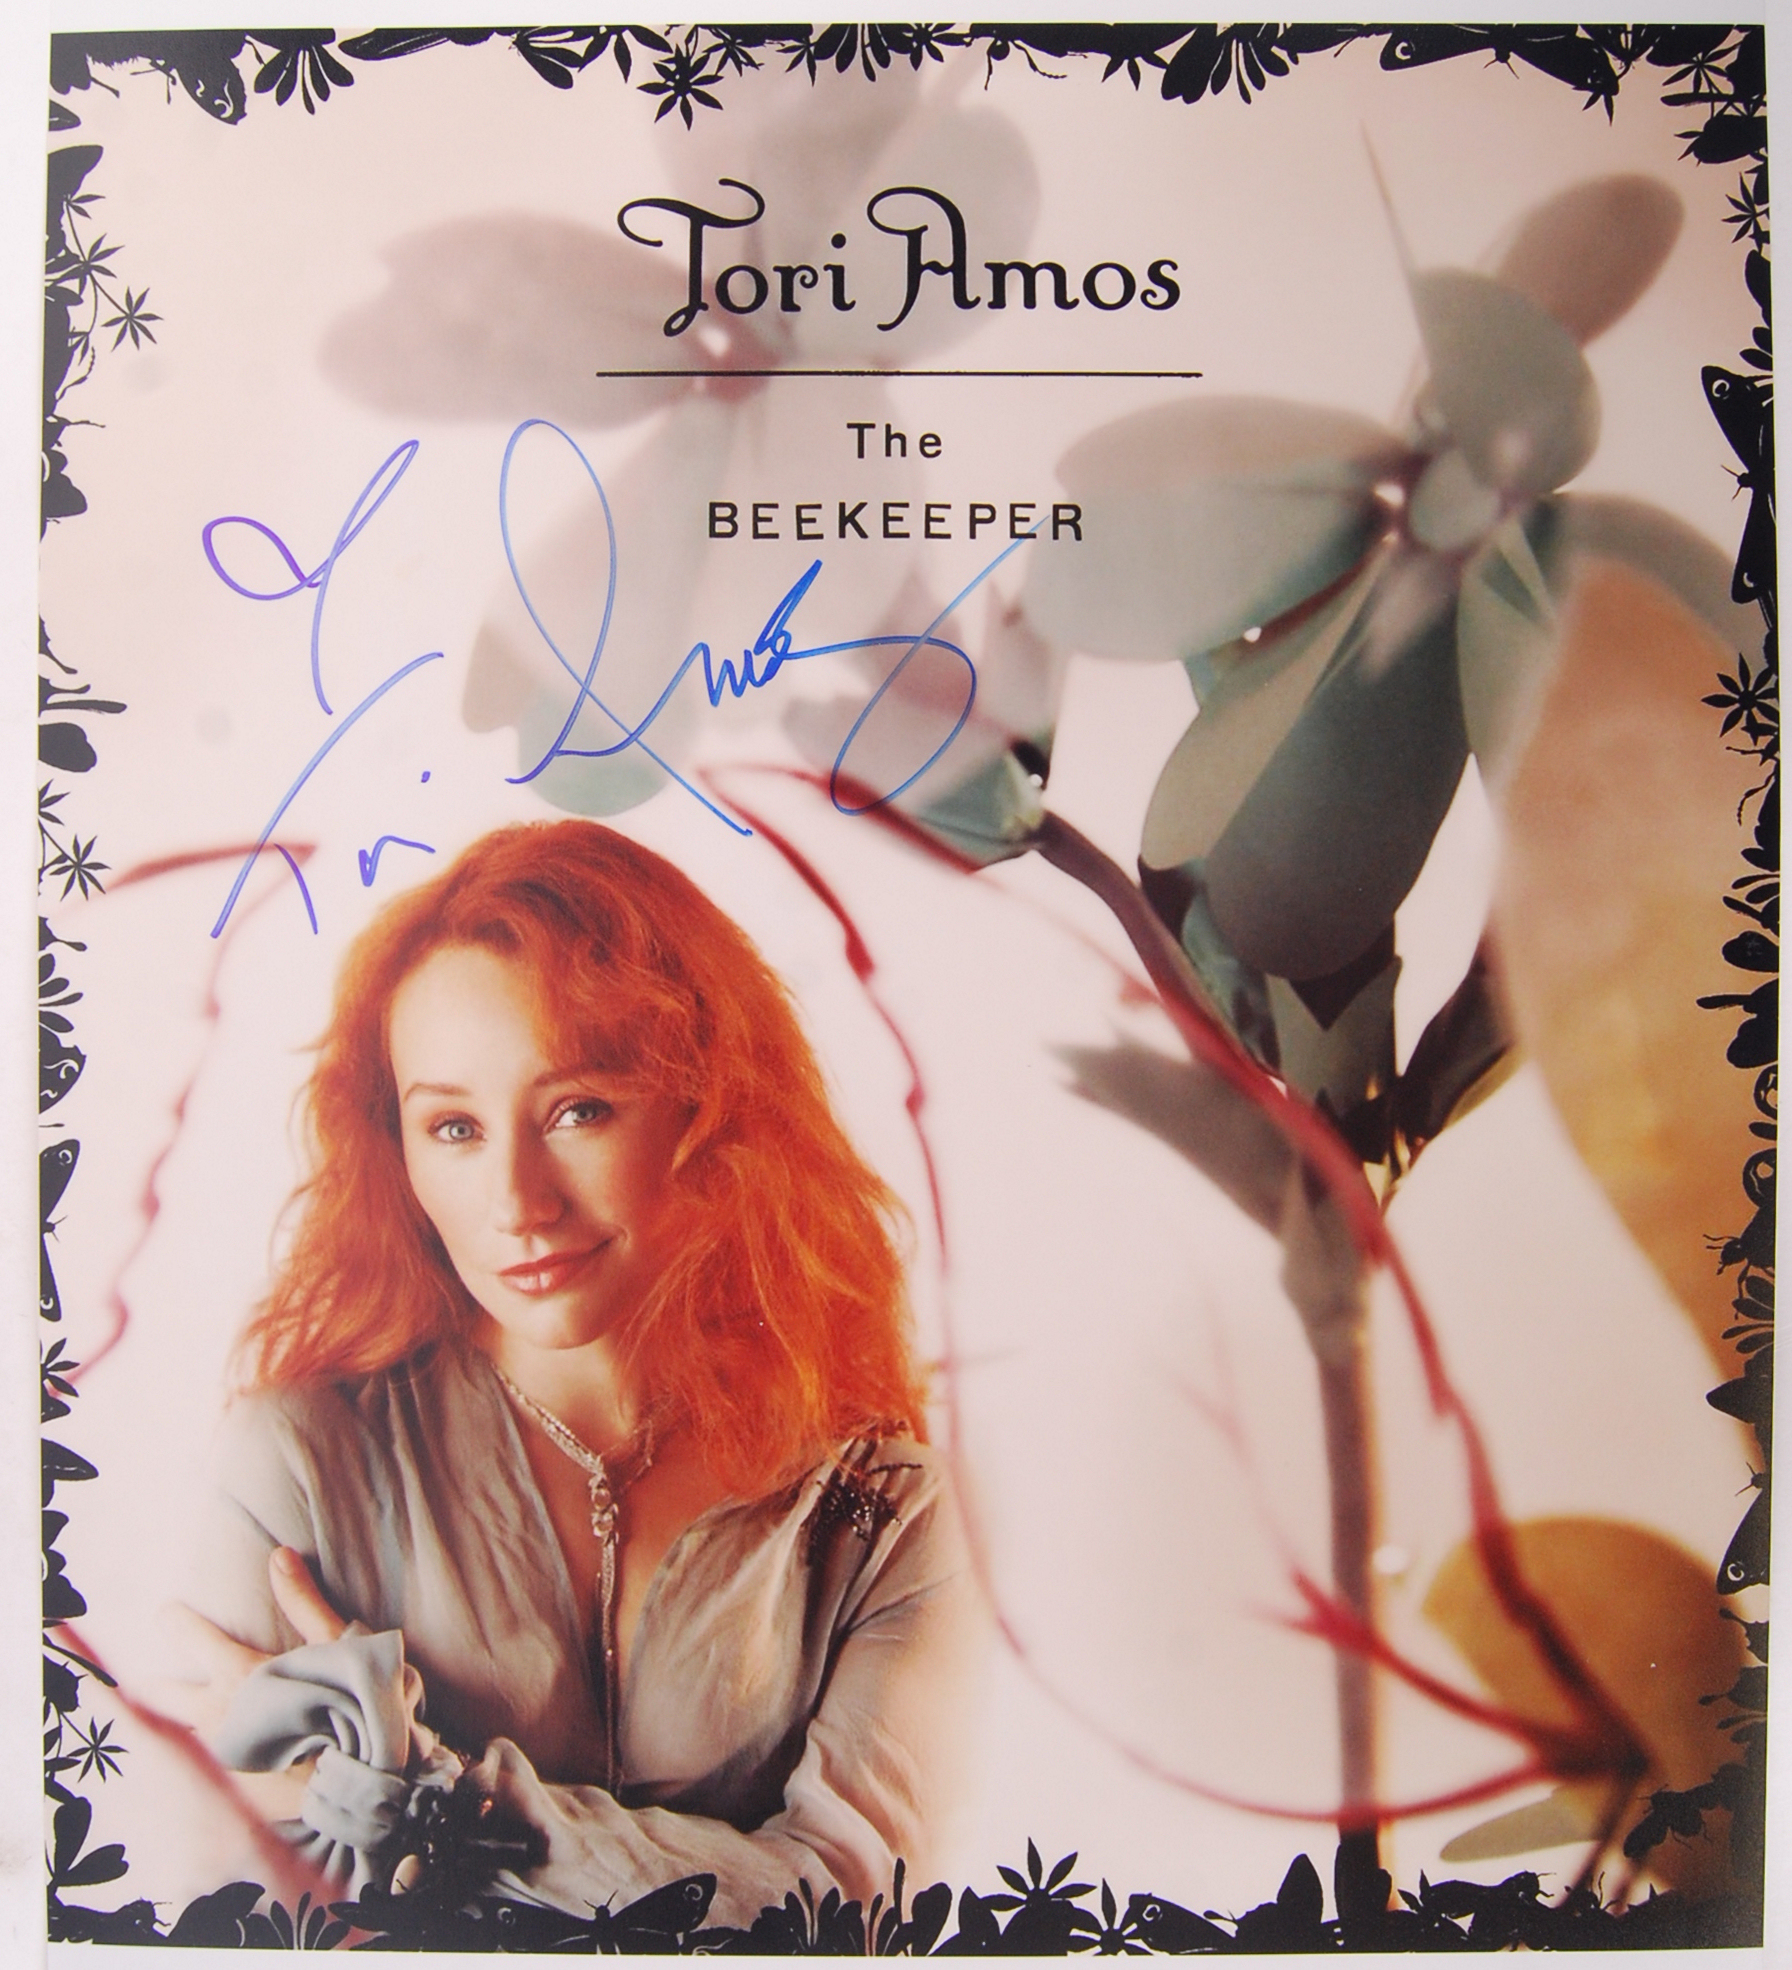 TORI AMOS - THE BEEKEEPER - RARE SIGNED PHOTOGRAPH